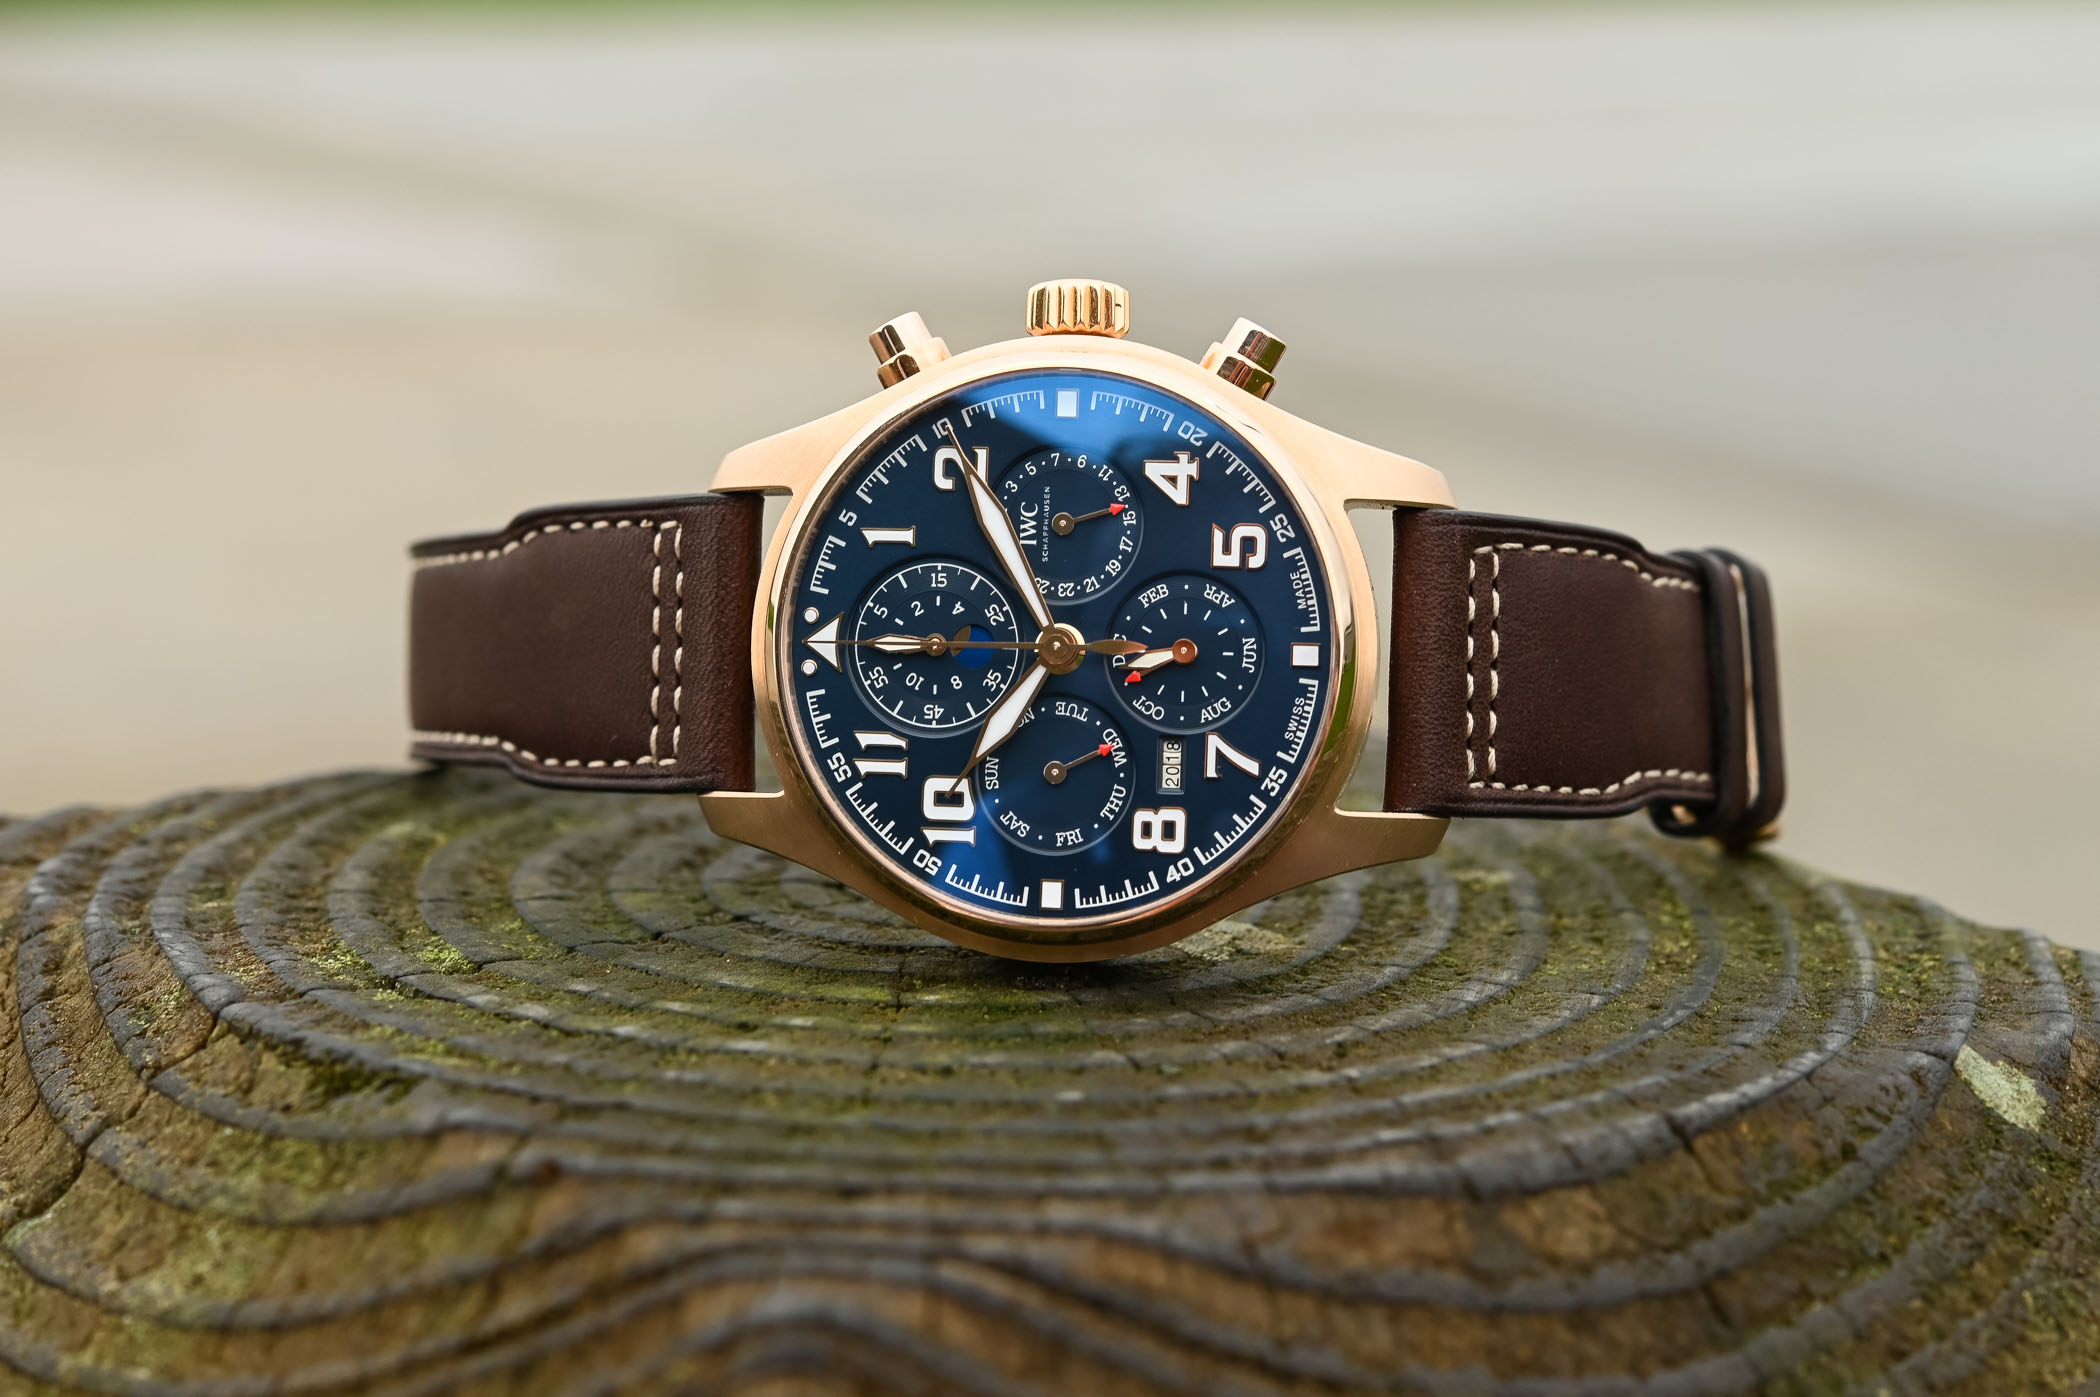 A few more new IWC Spitfires IWC-Pilots-Watch-Perpetual-Calendar-Chronograph-Le-Petit-Prince-IW392202-SIHH-2019-1